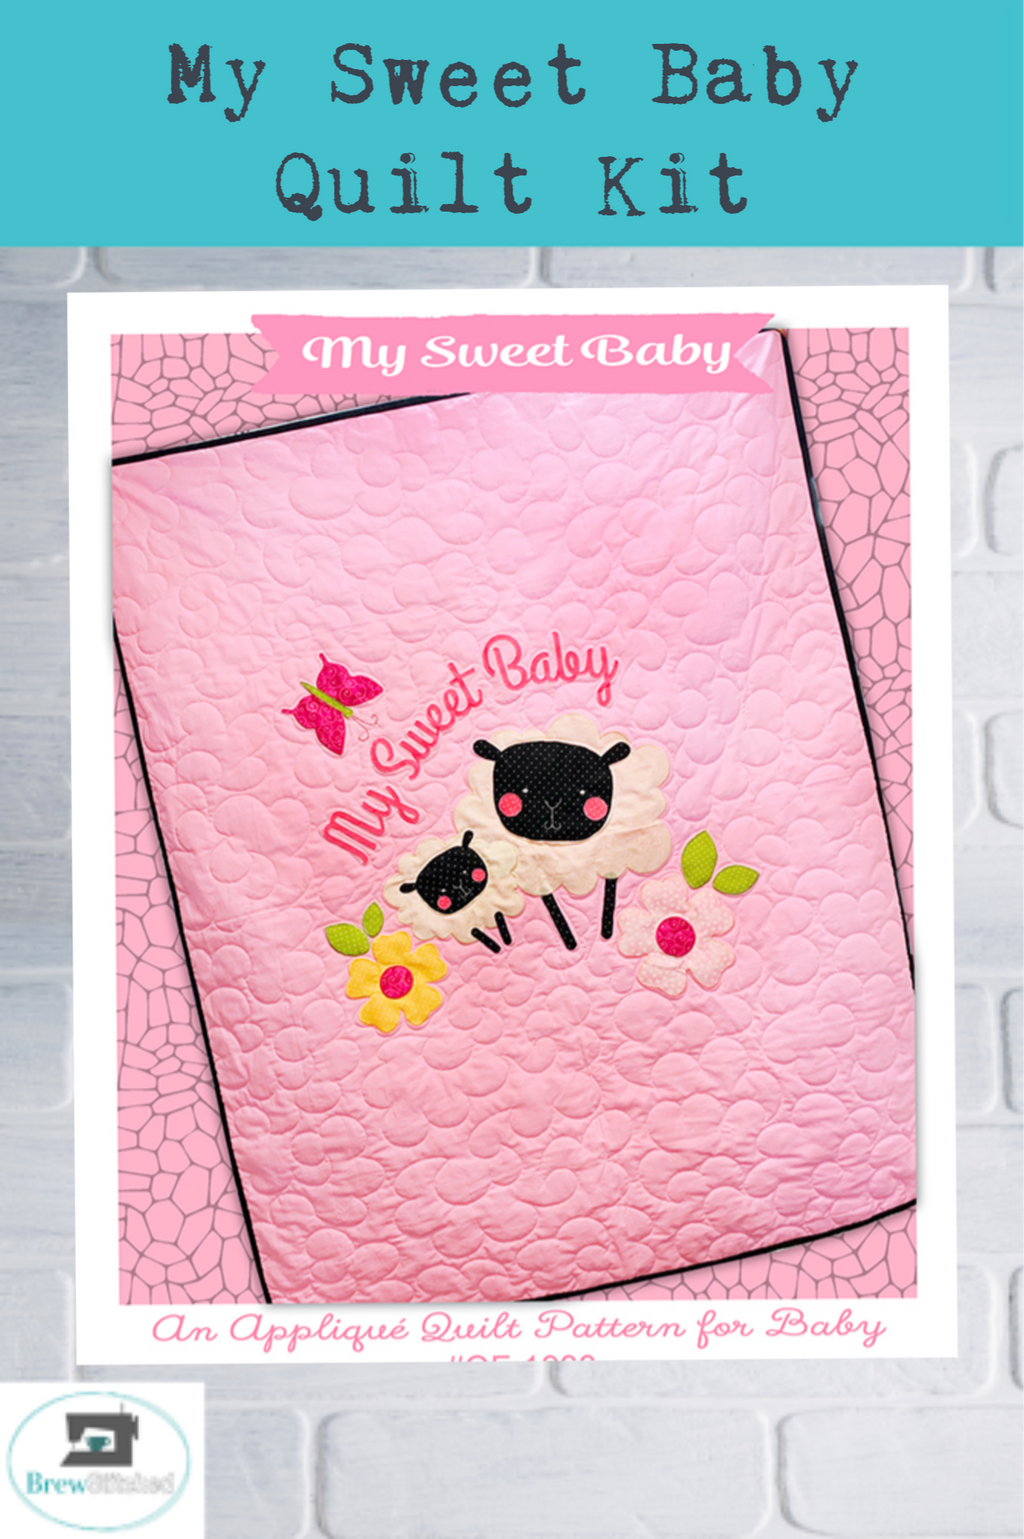 My Sweet Baby Applique Quilt Kit - brewstitched.com